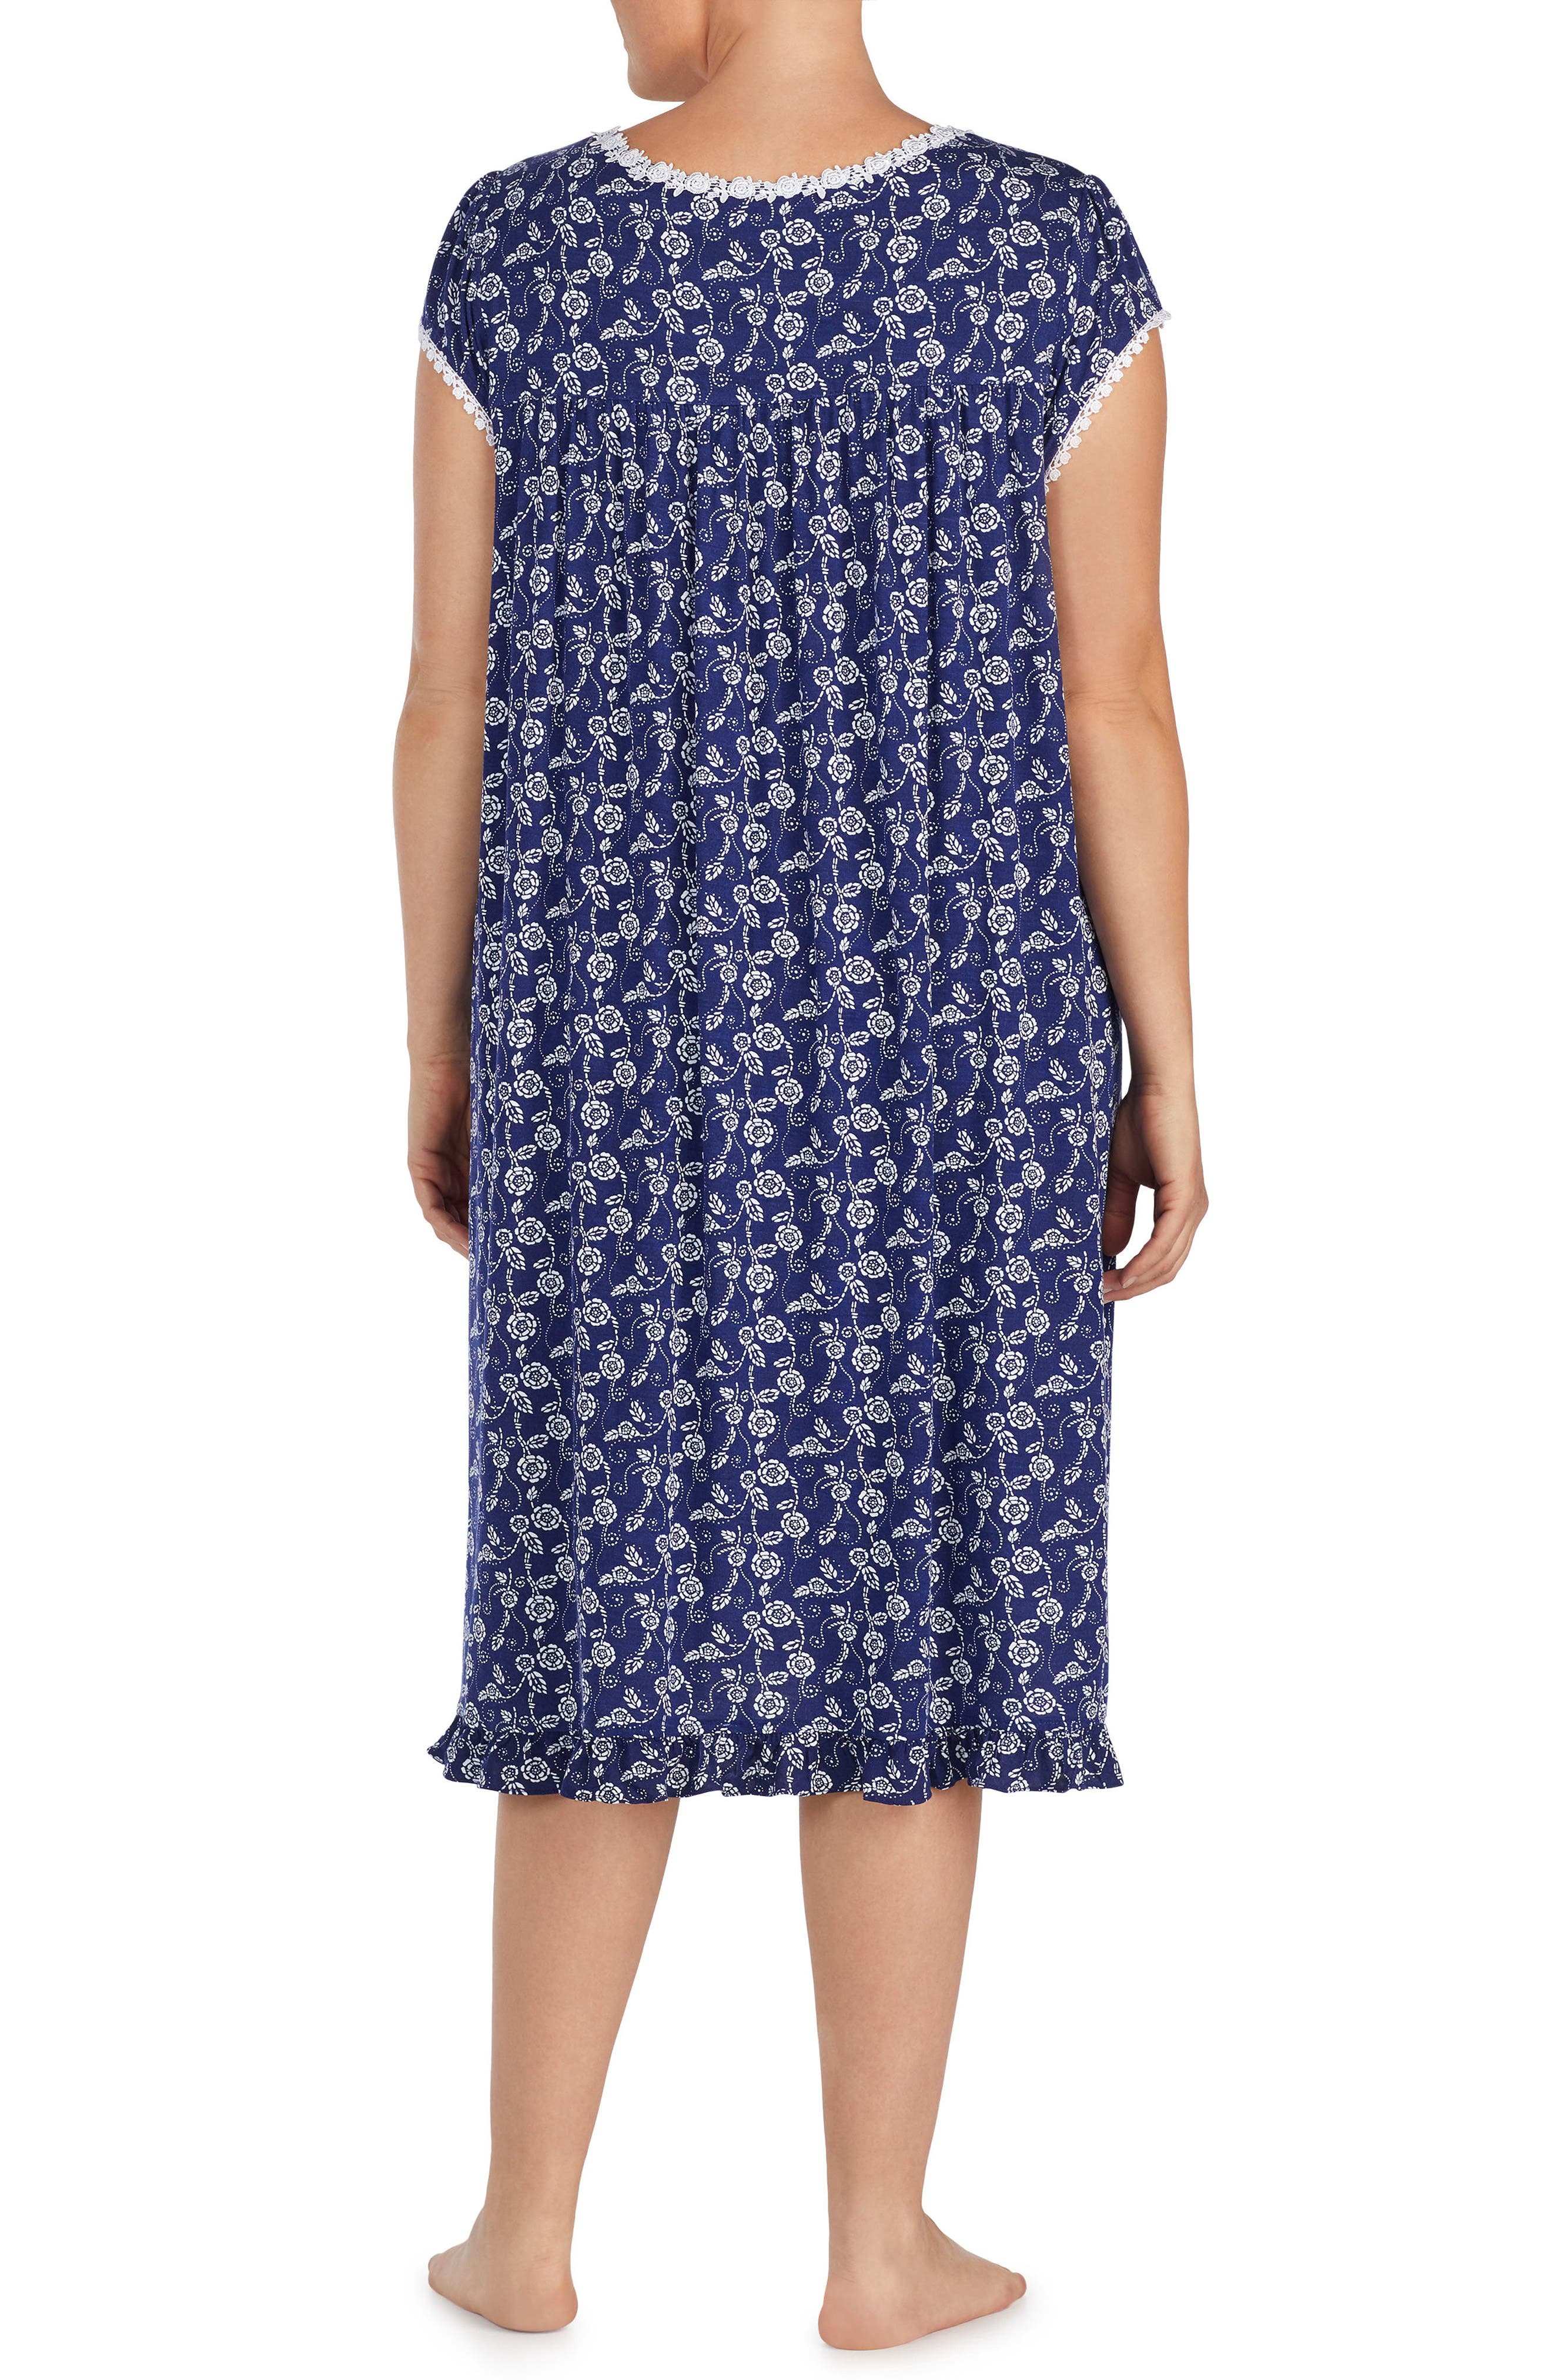 Alternate Image 2  - Eileen West Print Nightgown (Plus Size)